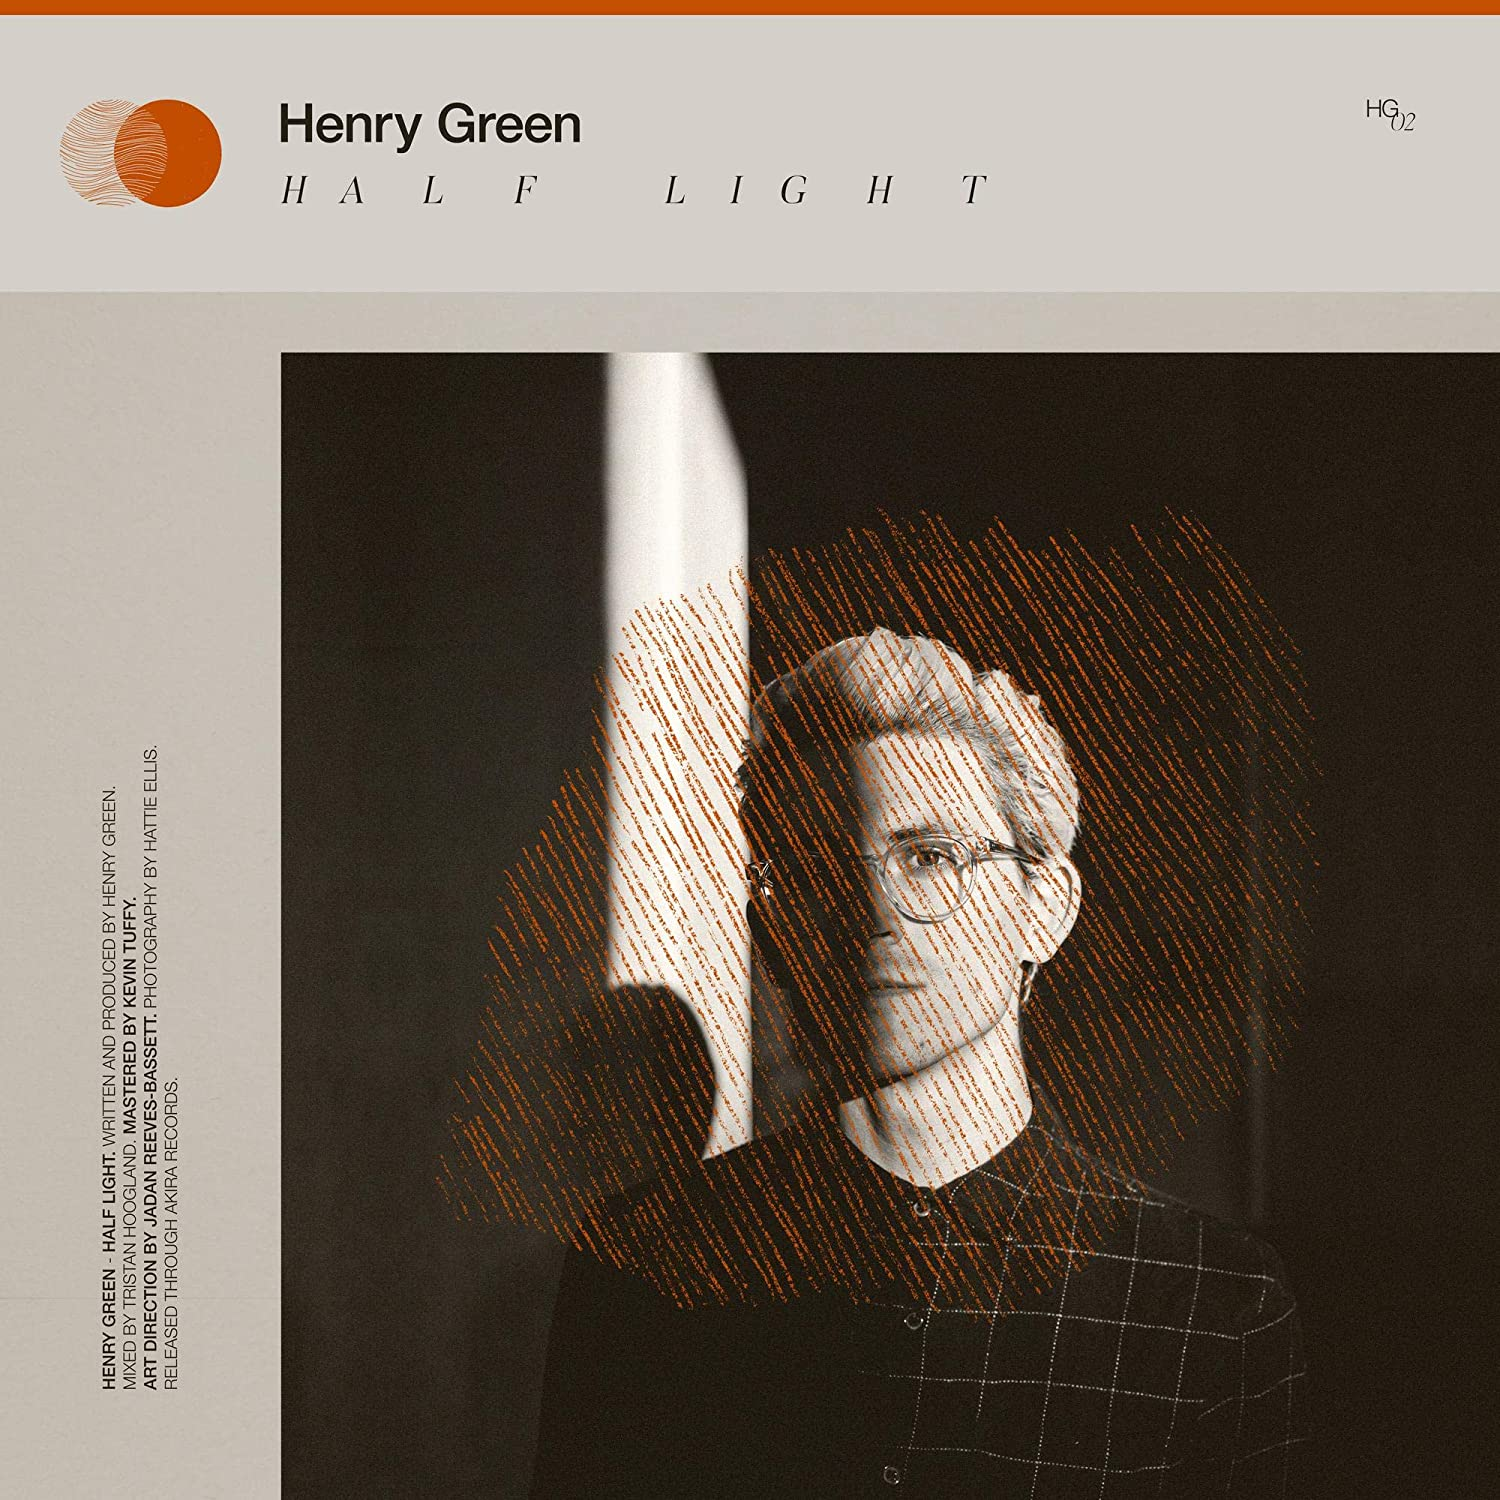 Henry Green - Half Light [LP] - Urban Vinyl | Records, Headphones, and more.